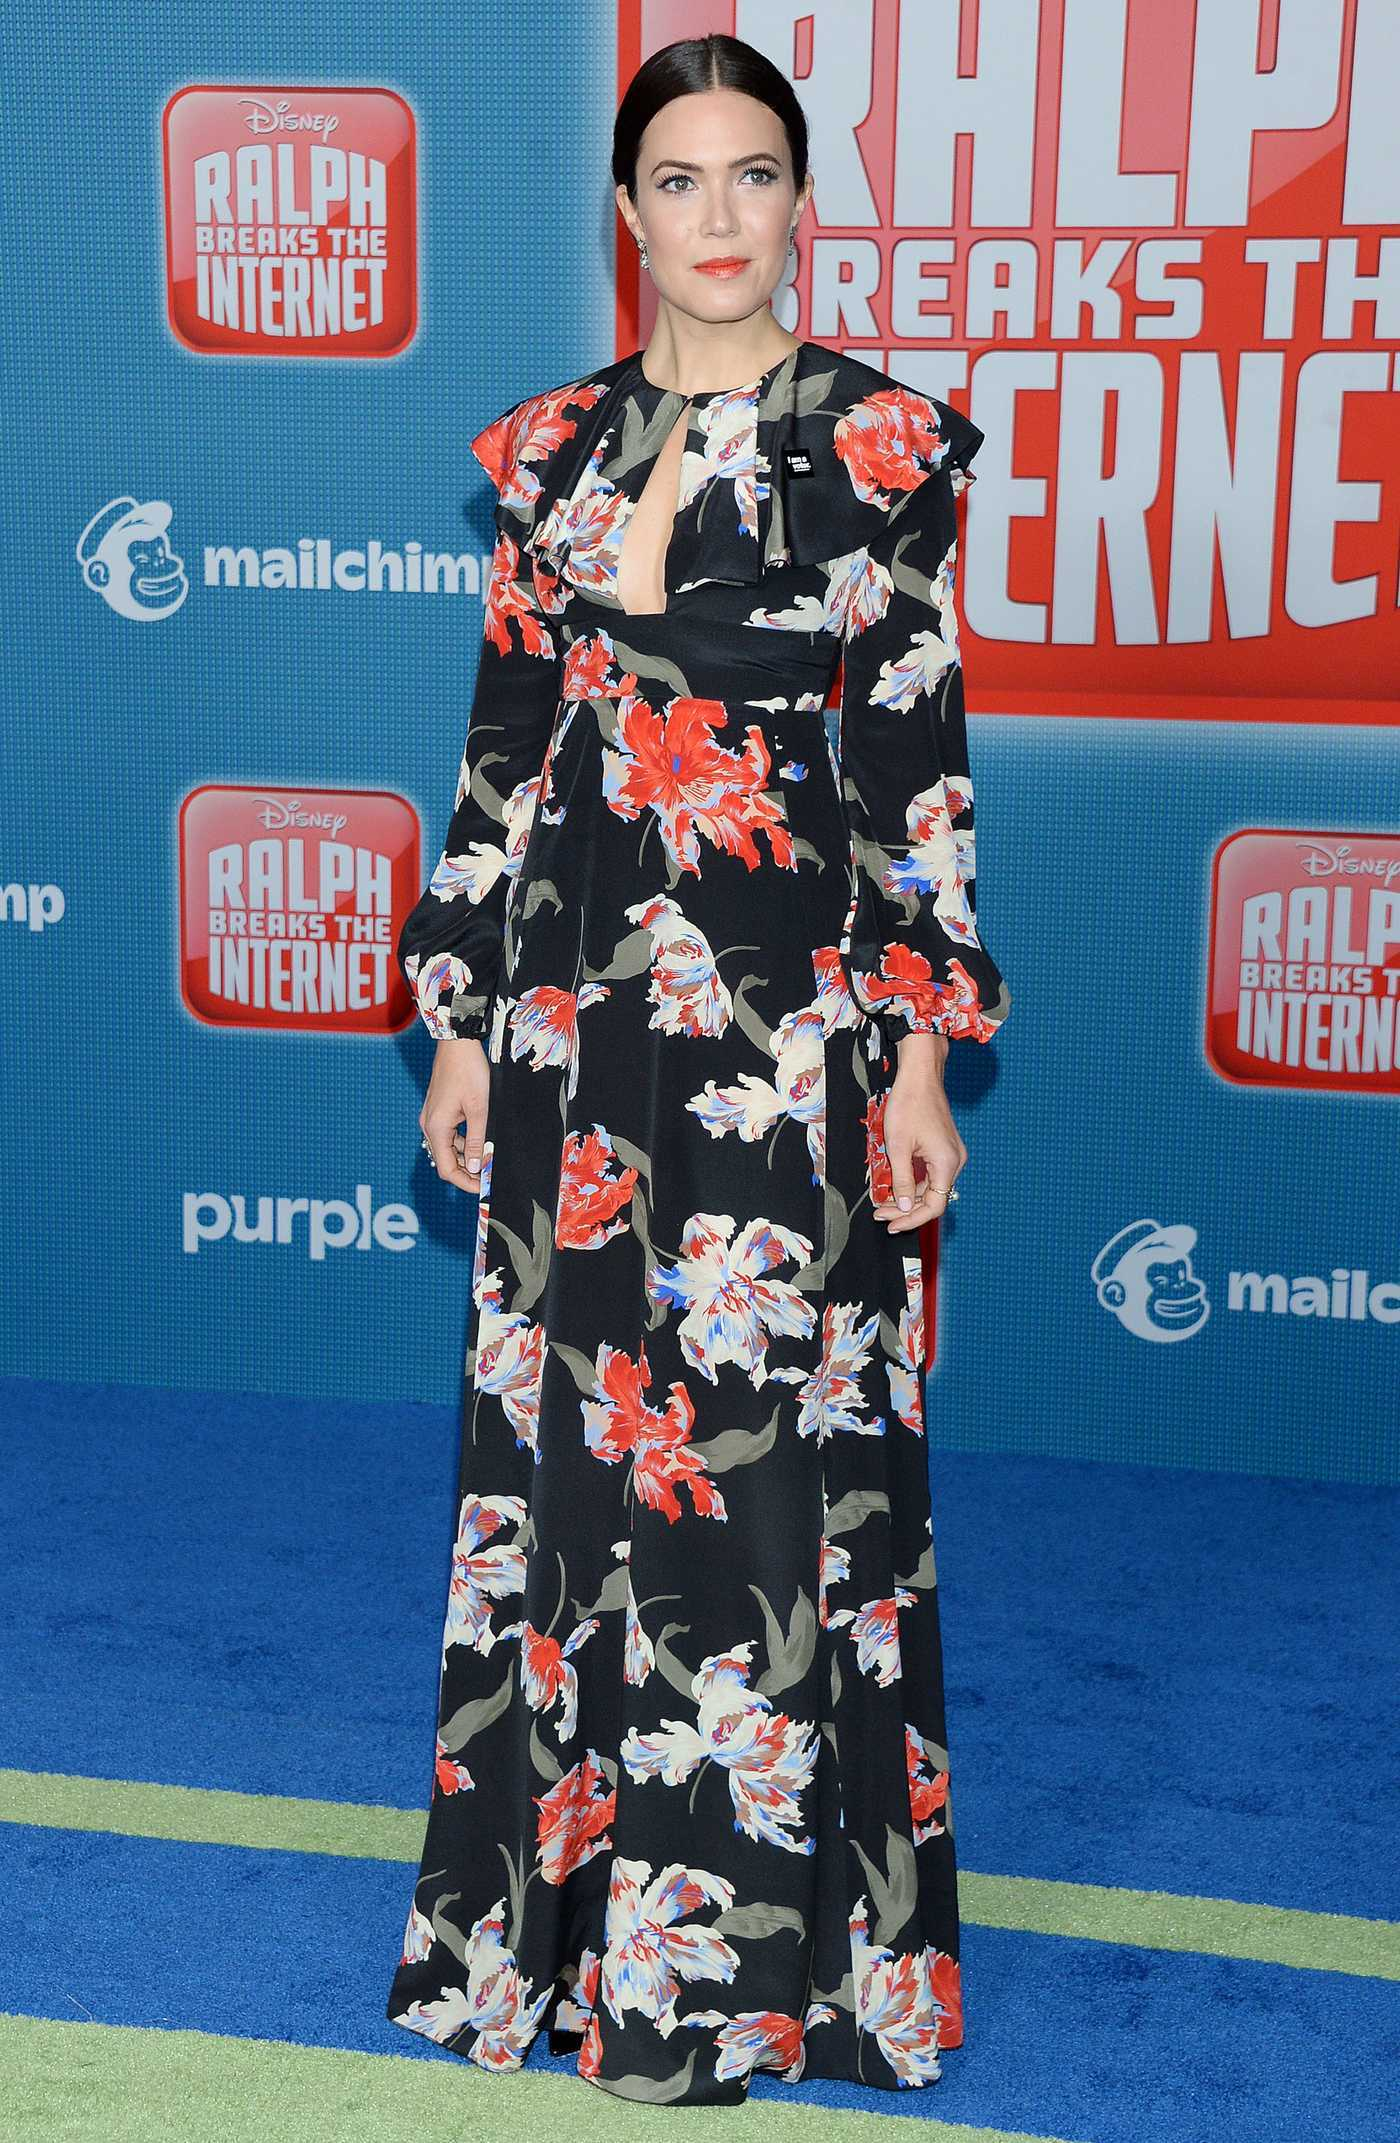 Mandy Moore Attends the Ralph Breaks the Internet Premiere in Hollywood 11/05/2018